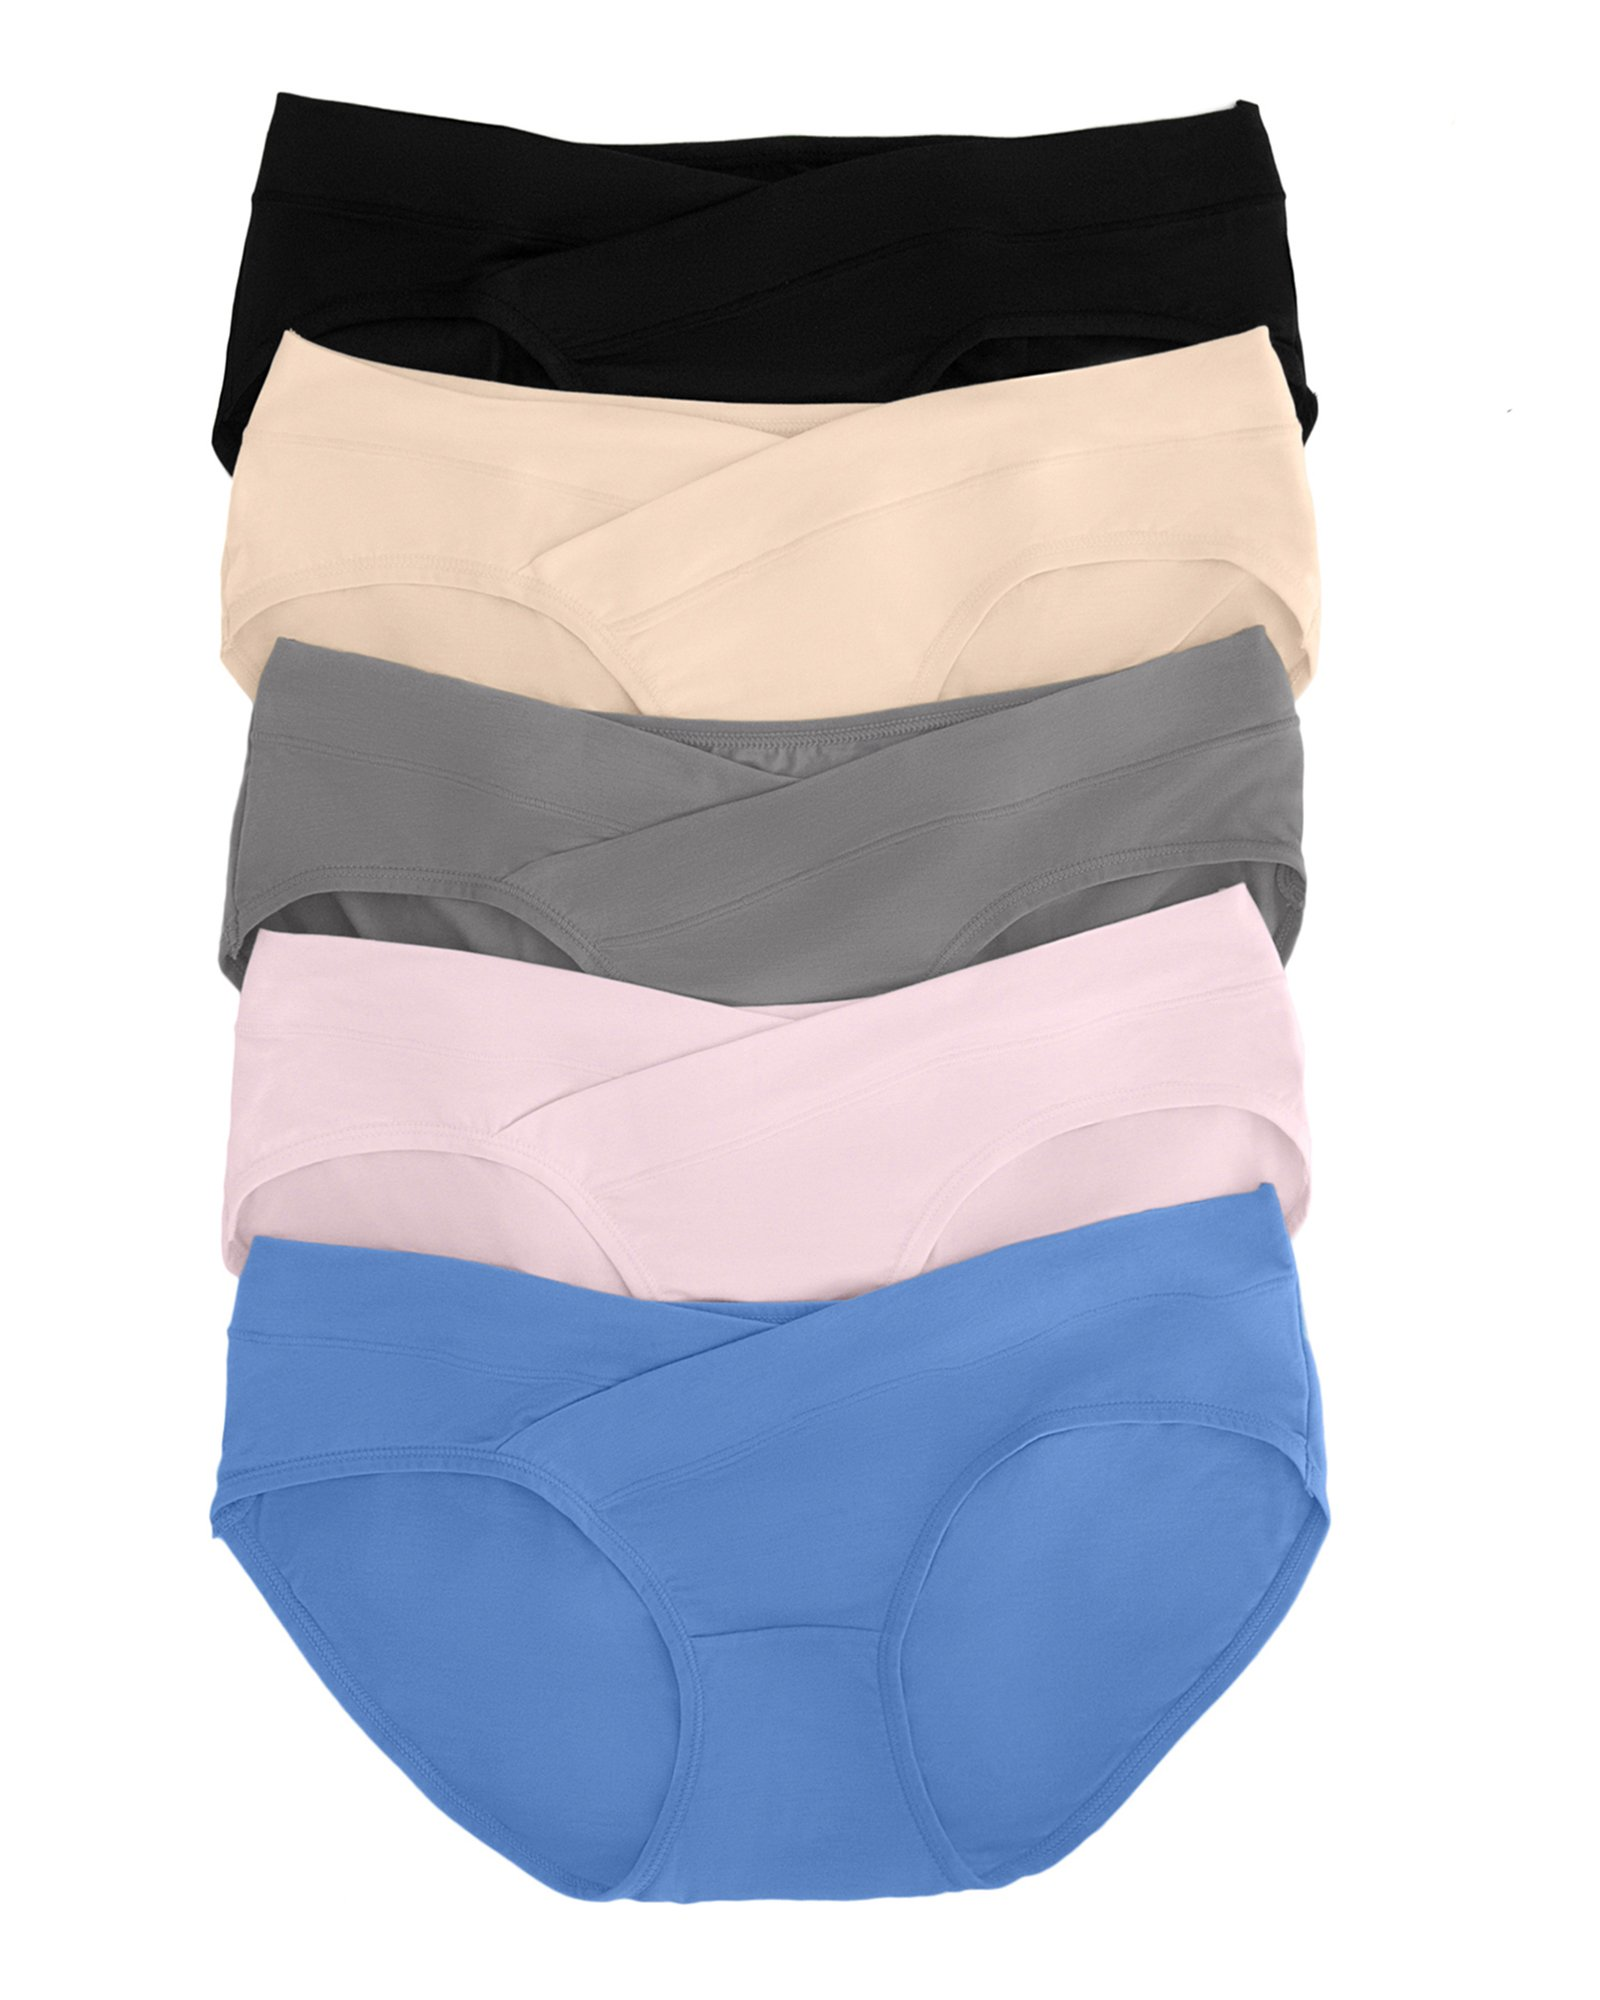 Kindred Bravely Under The Bump Seamless Maternity Underwear/Pregnancy Panties - Bikini (Large Assorted, 5 Pack)